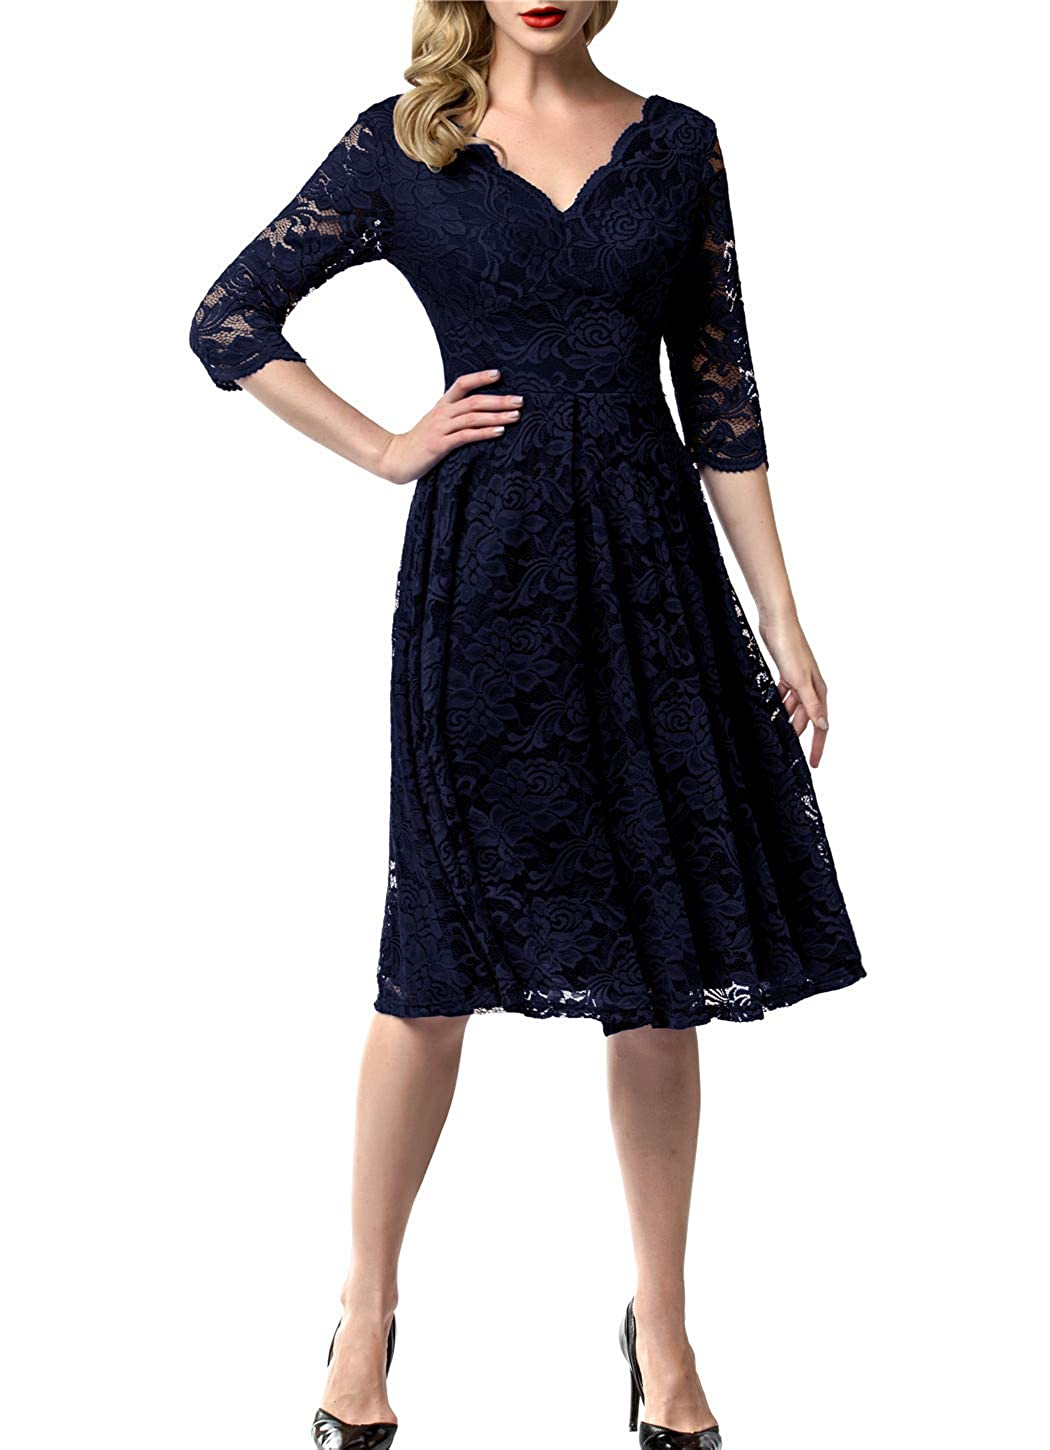 1940s Dresses | 40s Dress, Swing Dress AONOUR Womens Vintage Floral Lace Bridesmaid Dress 3/4 Sleeve Wedding Party Midi Dress $42.99 AT vintagedancer.com